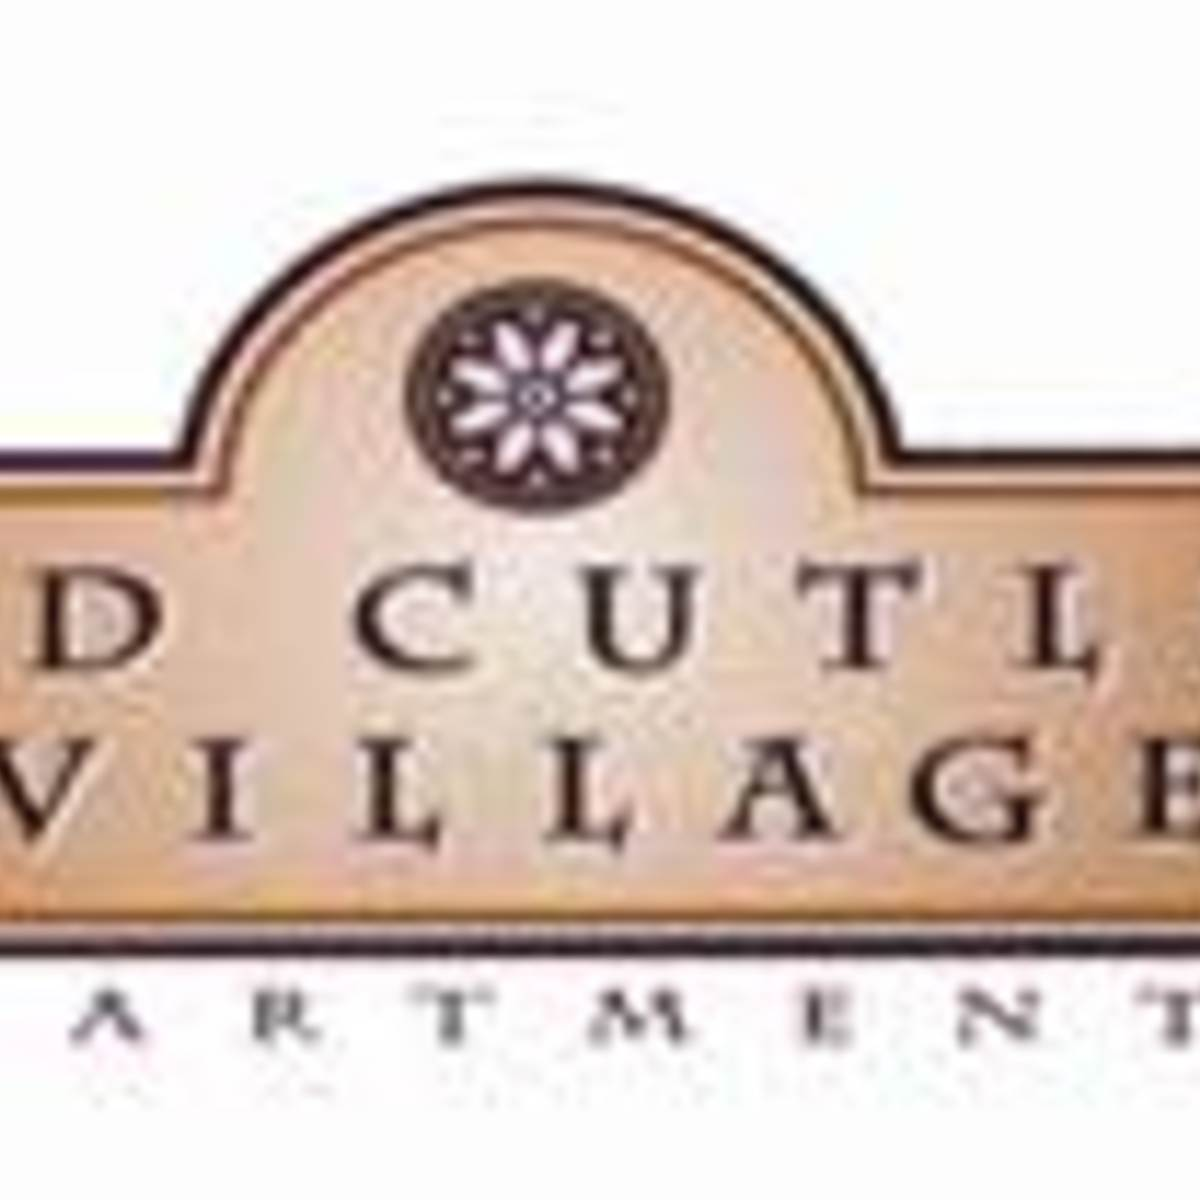 Cutler Bay Apartments: Contact Us Old Cutler Village Apartments